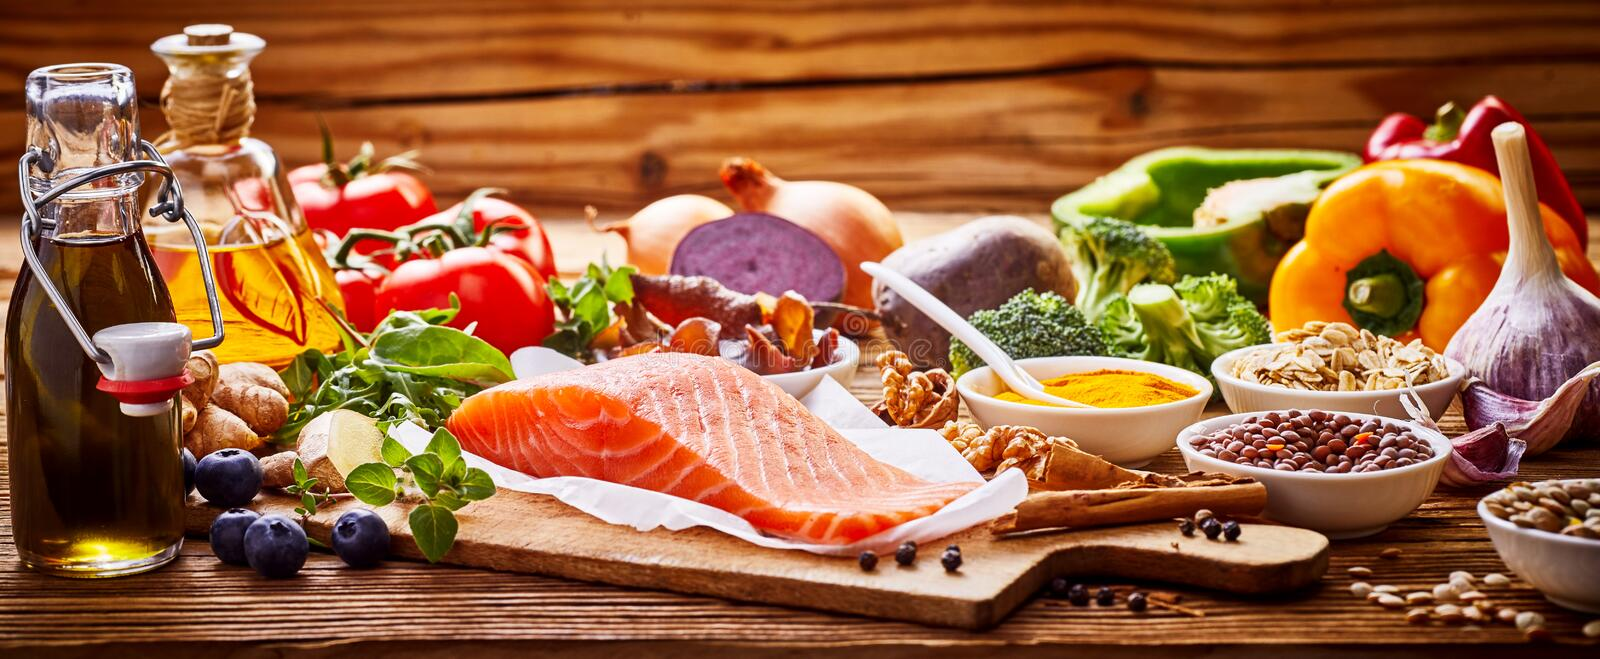 Healthy fresh raw food for the heart in a banner. Format on rustic wood with salmon, assorted spices, herbs, nuts, peppers, blueberries, tomato, onion, broccoli royalty free stock images